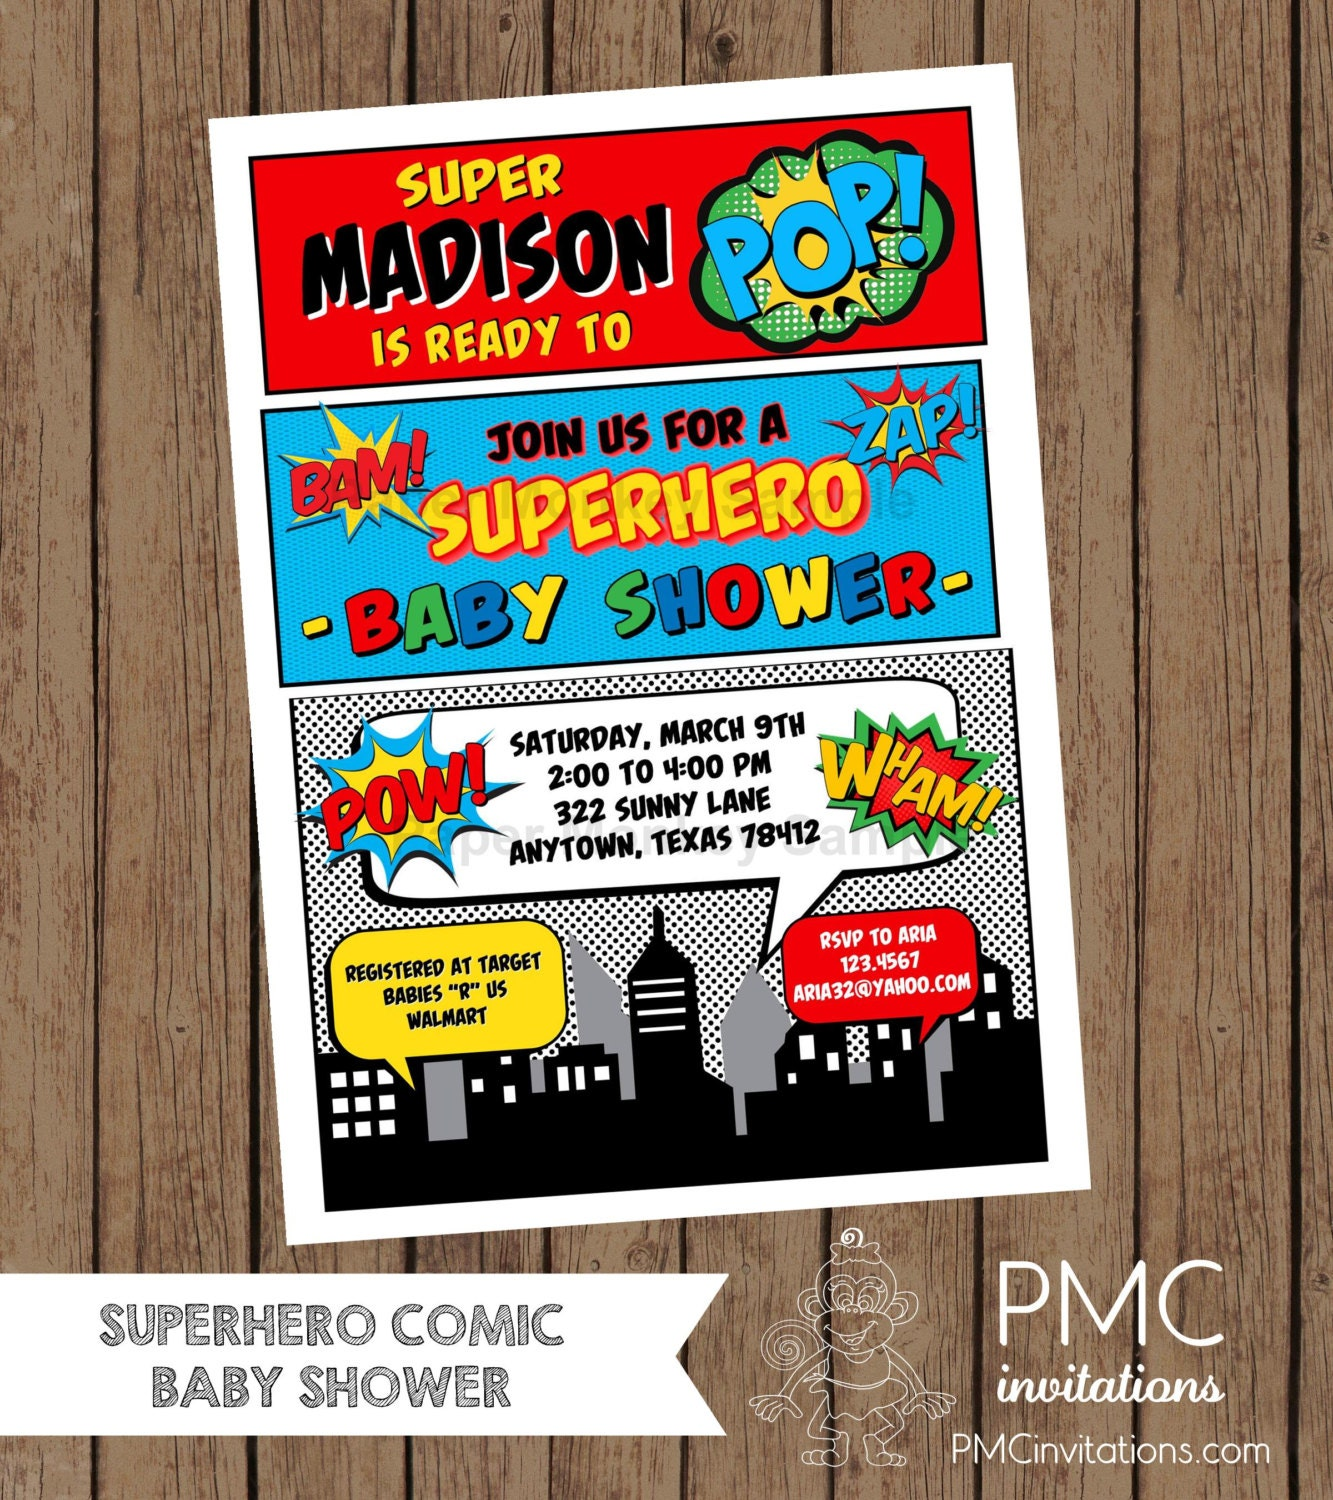 Custom Printed Superhero Comic Baby Shower Invitations 1.00